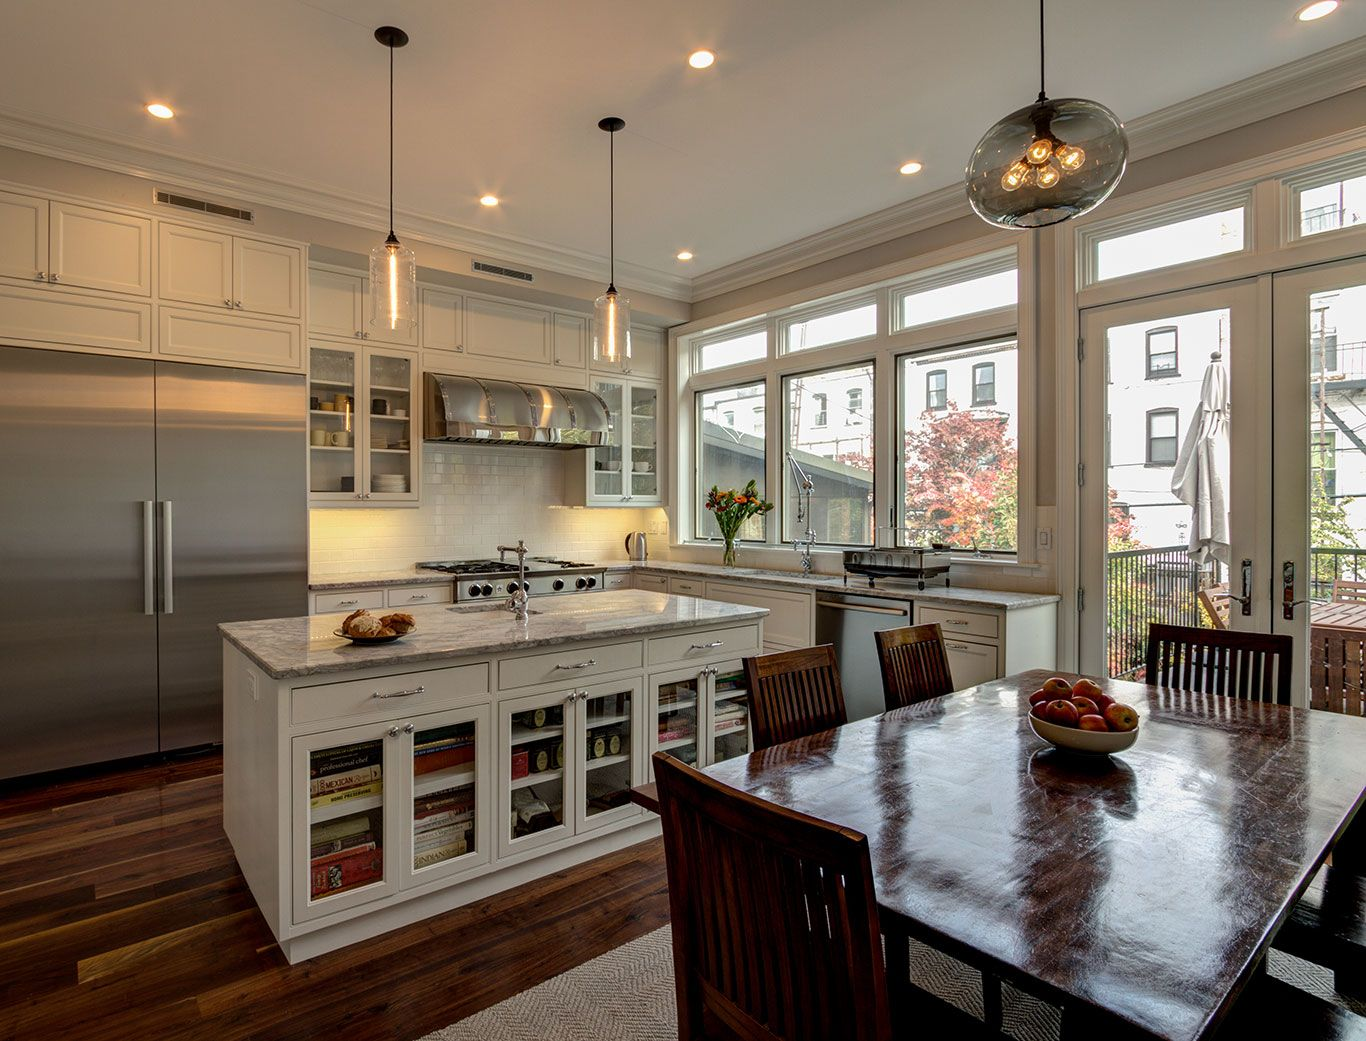 Kitchen Design Brooklyn Interesting Kitchen In A Brownstone Renovationpark Slope Brooklynben Inspiration Design